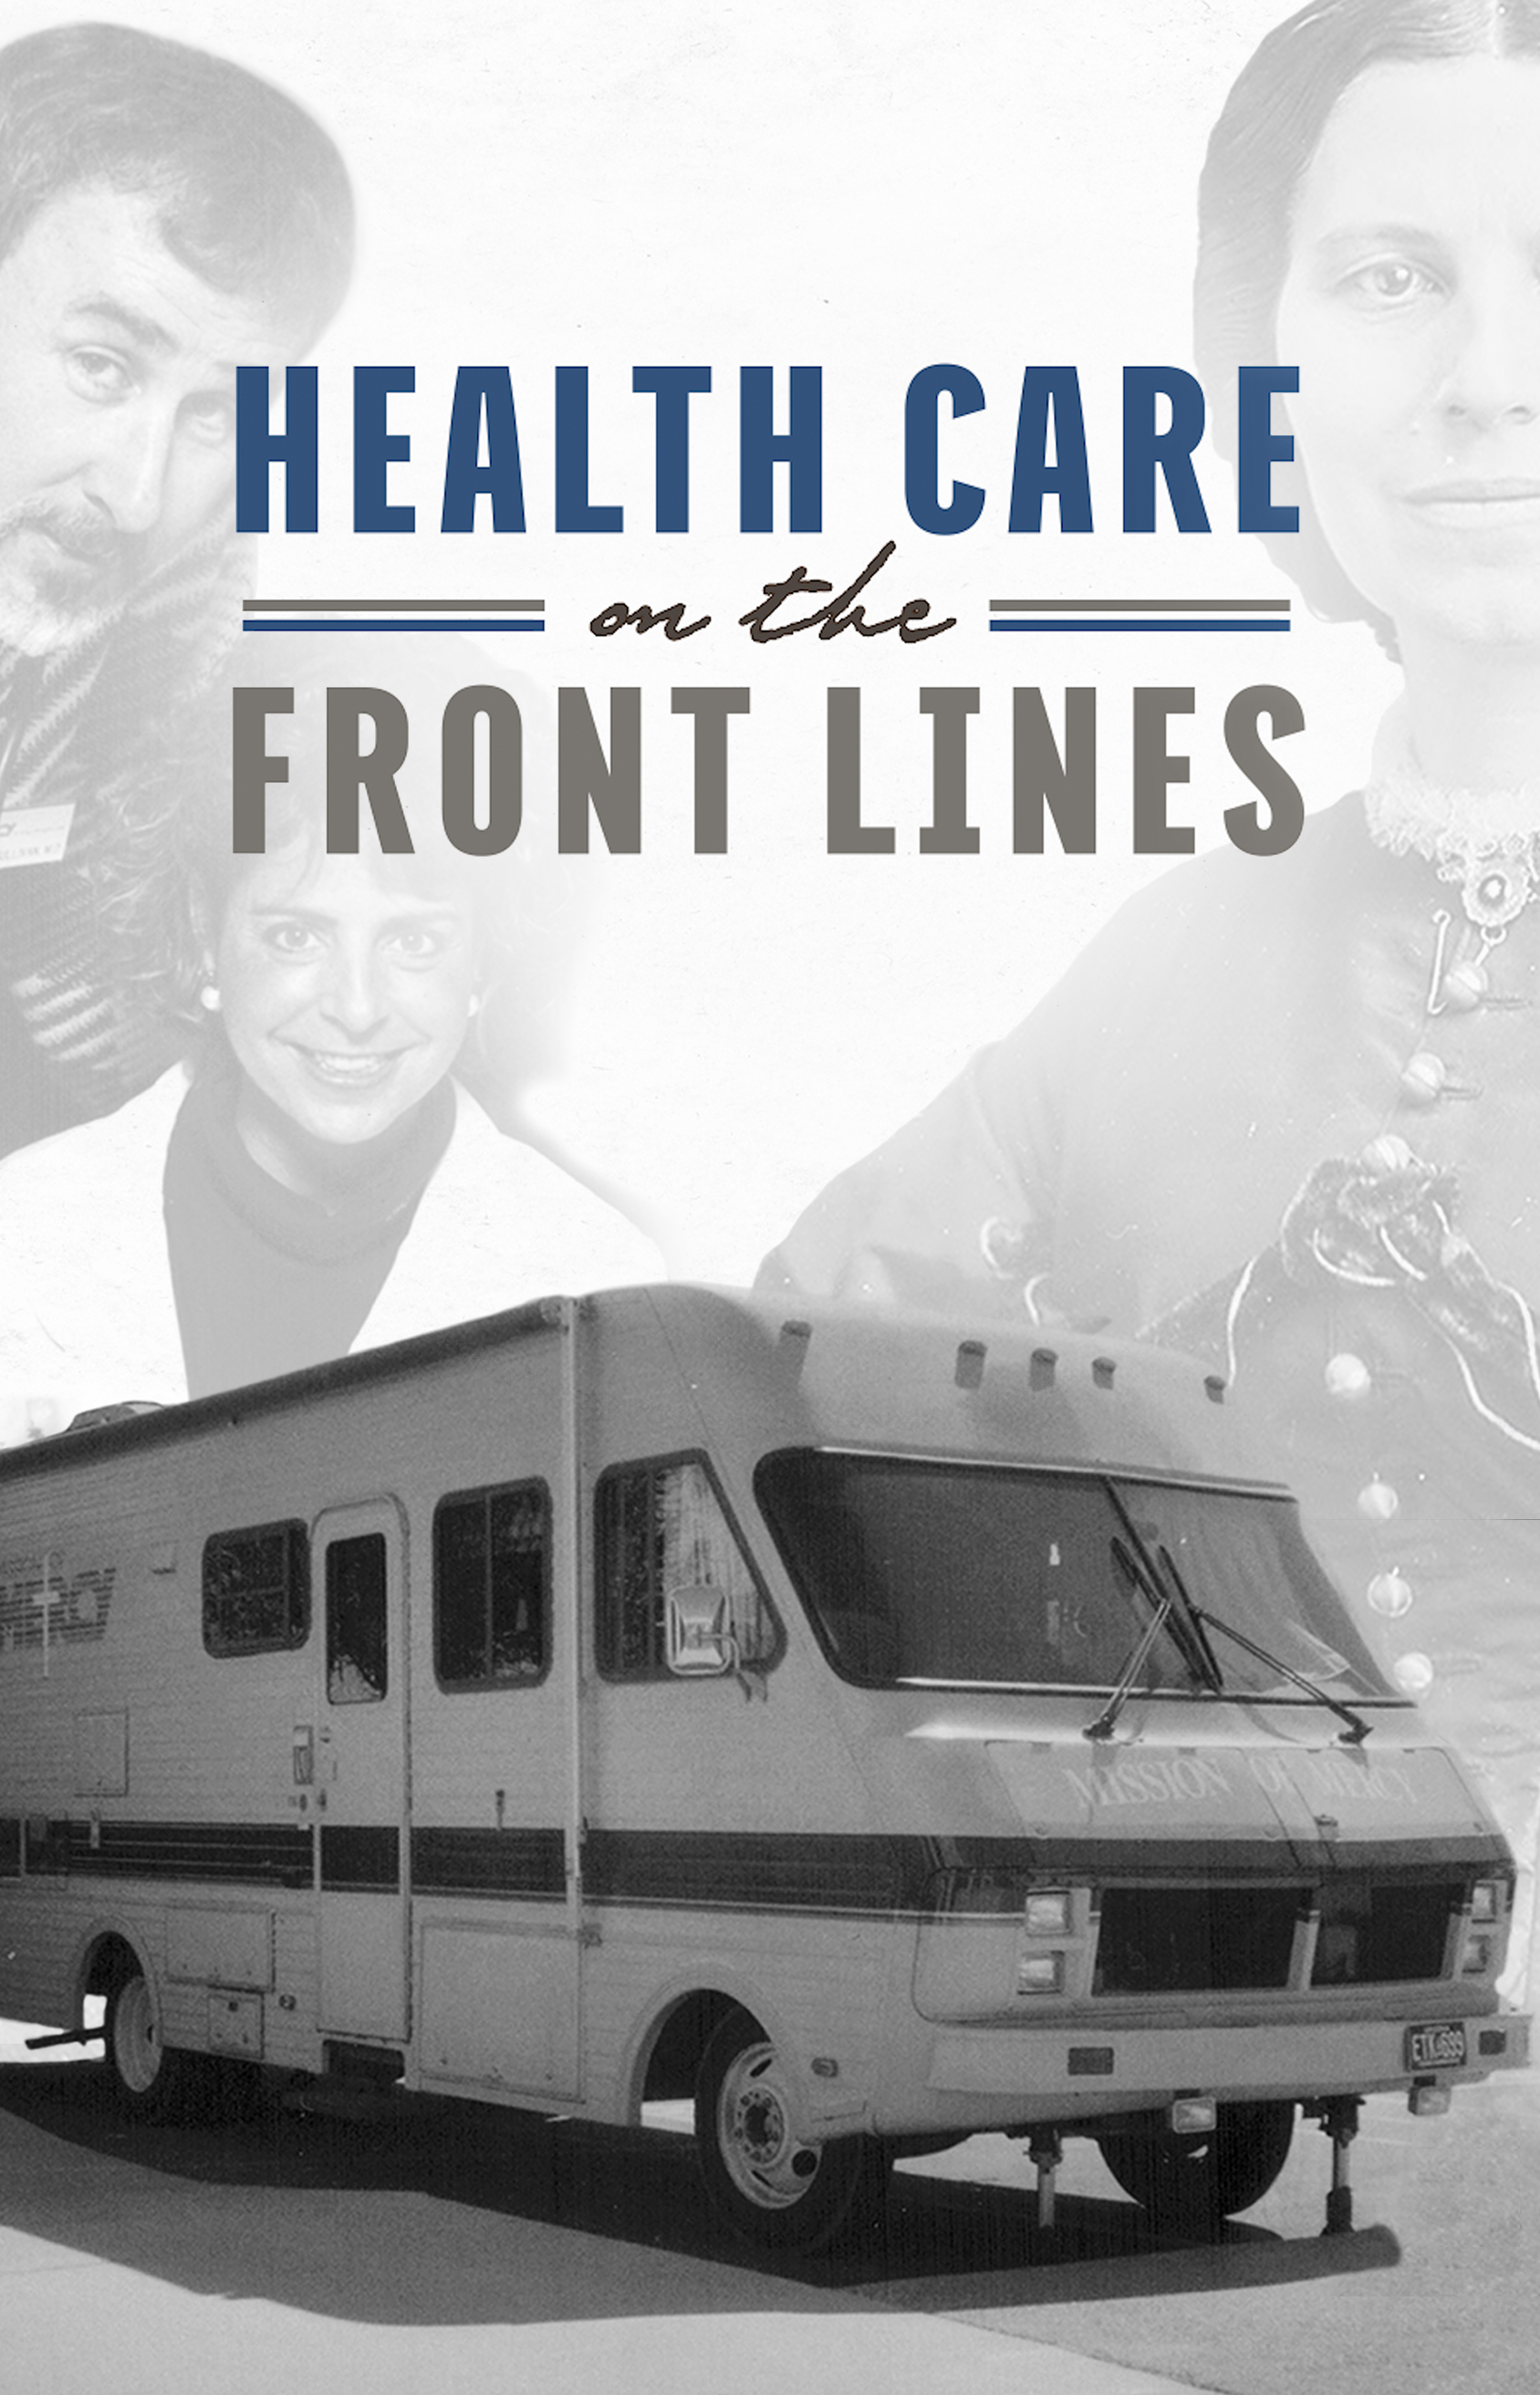 Healthcare on the Front Lines